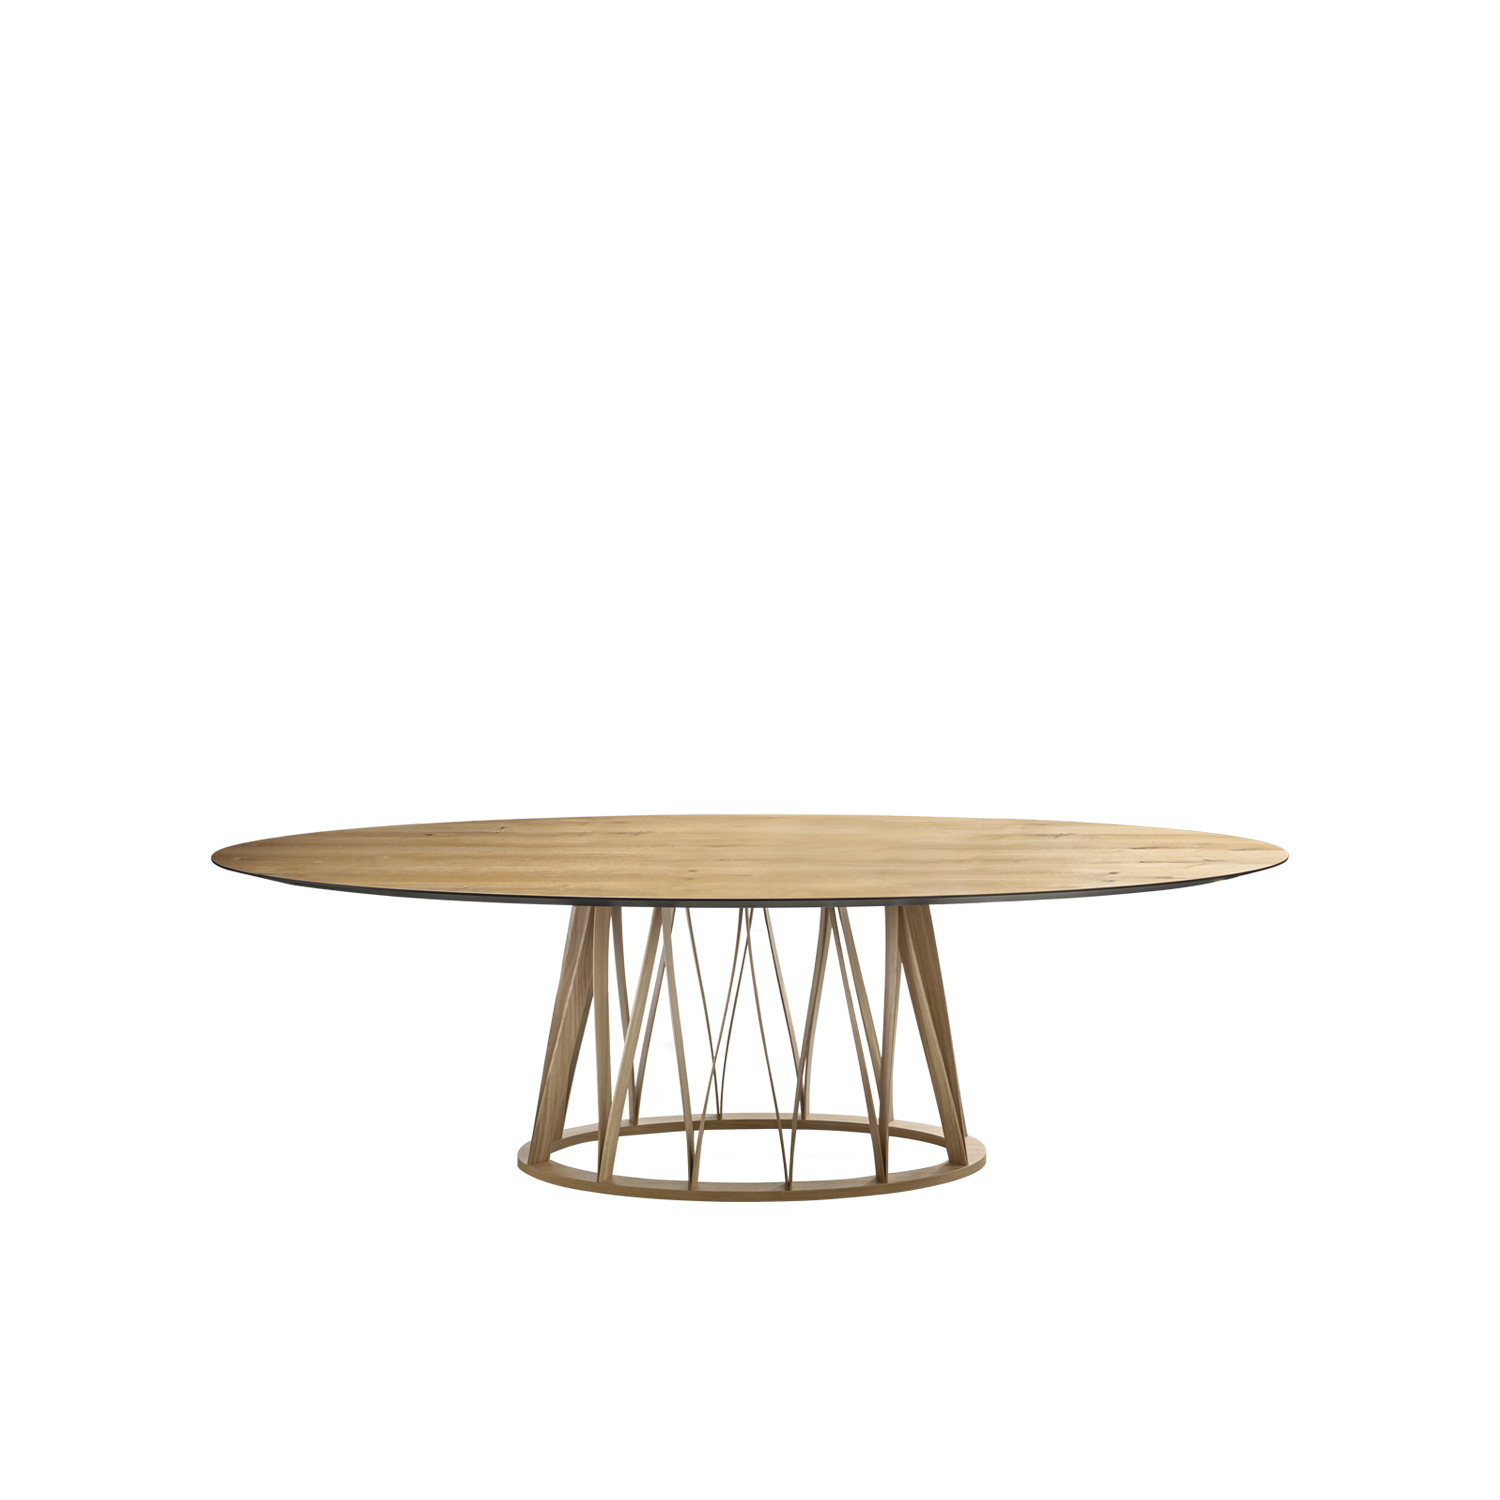 Acco Dining Table - Acco is an elegant dining table with a strong character that resists labelling. It displays a mature, sophisticated language, which is developed through the design of the base frame with its distinct regular pattern of wooden lines.